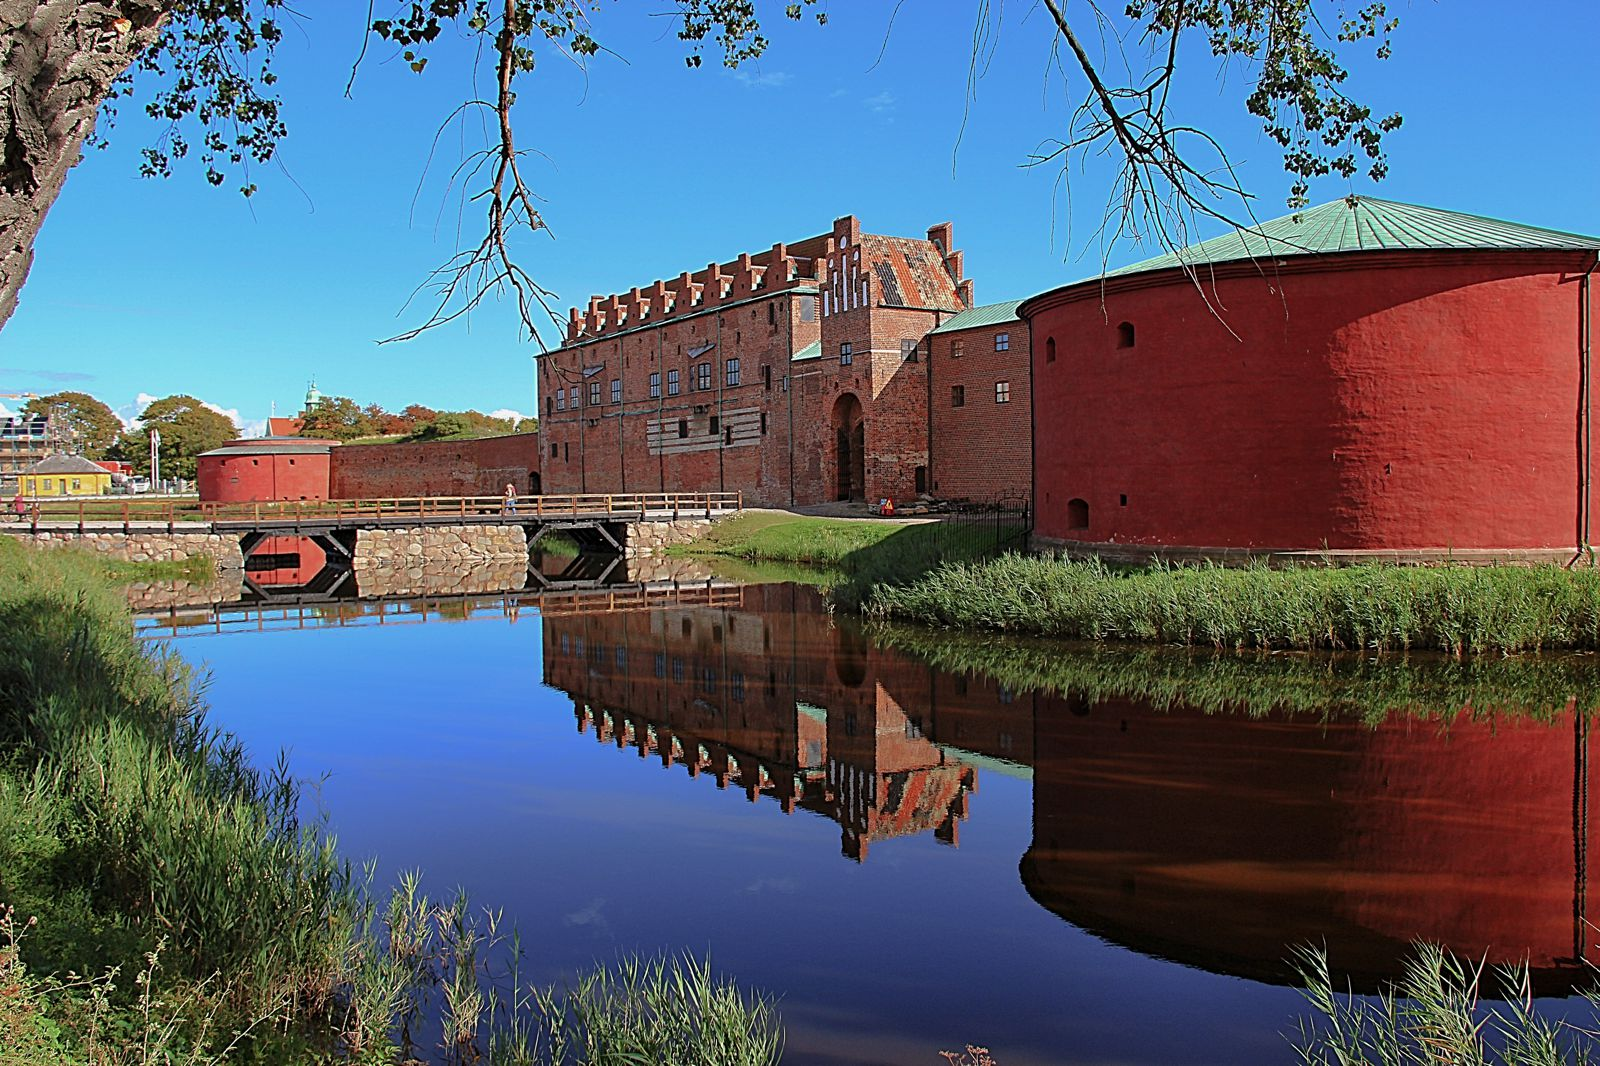 12 Magnificent Castles You Wouldn't Expect To See When Visiting Sweden (13)